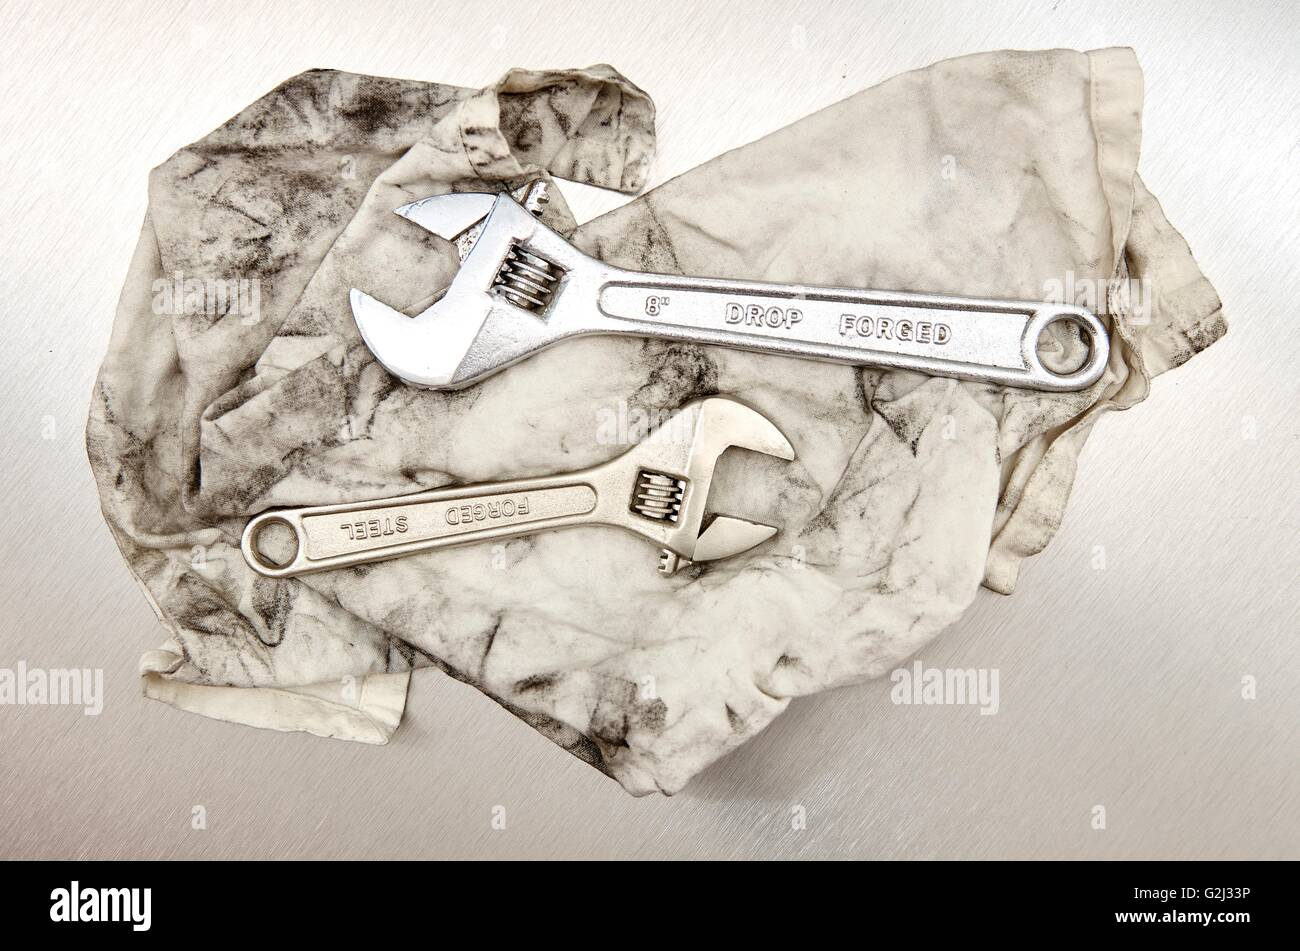 ebf64a4d35104a A studio photo of a wrench on an oily rag Stock Photo: 104889114 - Alamy